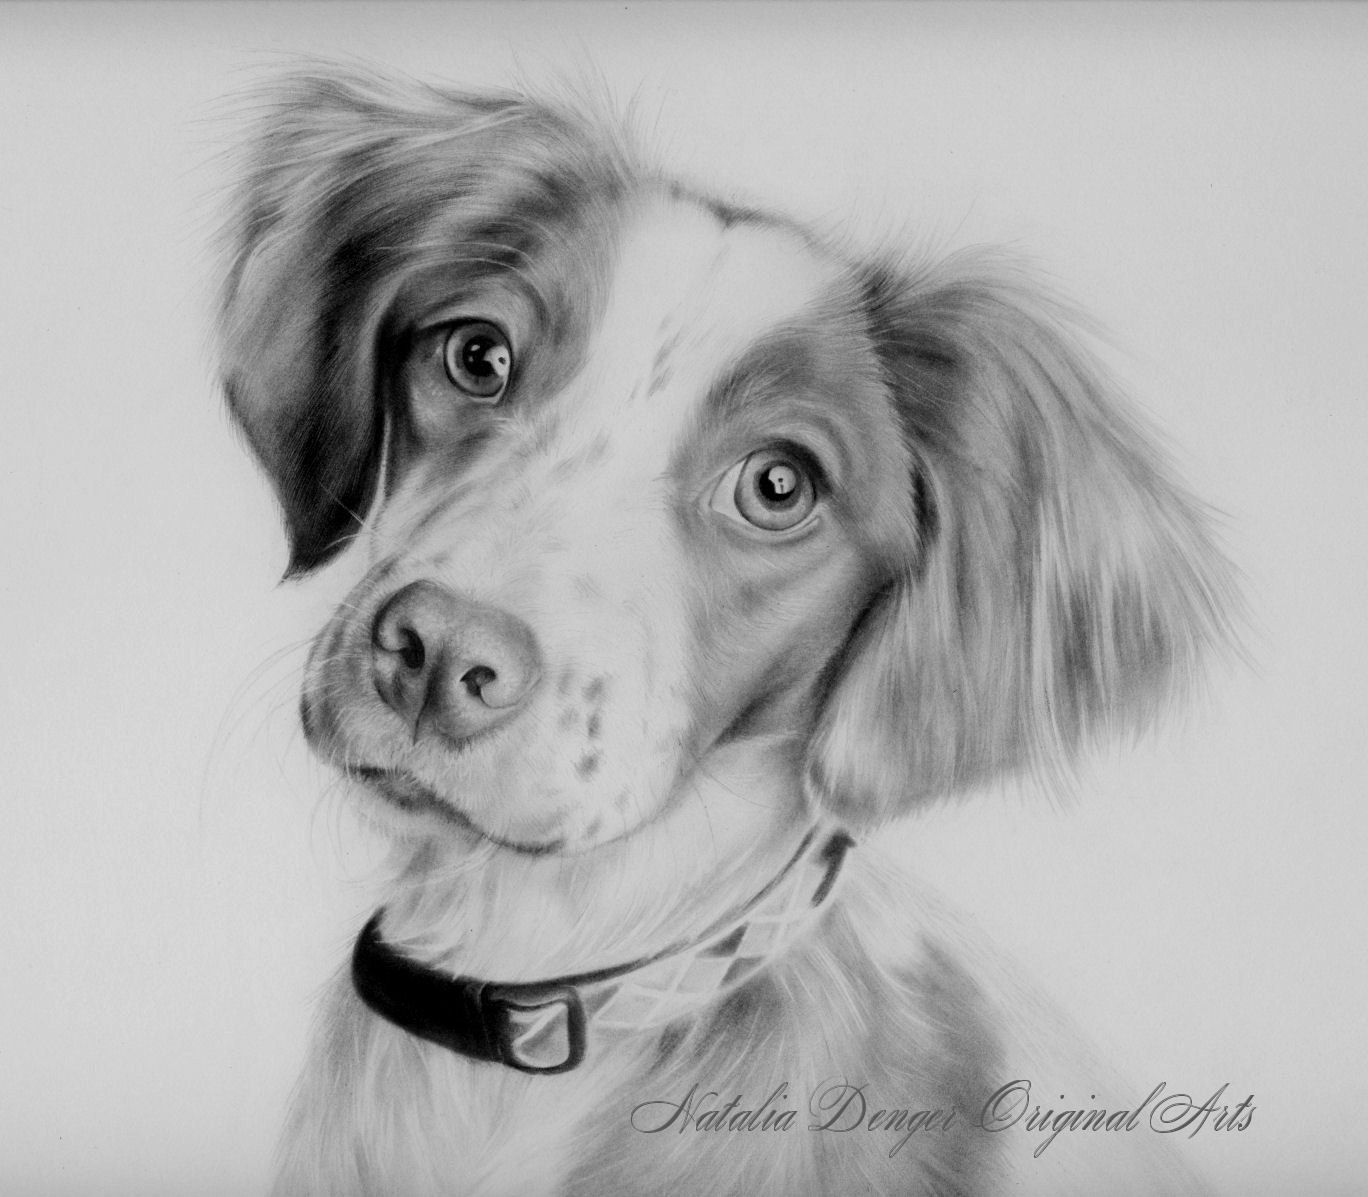 Custom Portrait, 8x8 Pet Portrait, Animals, Dog, Cat, Puppy, Pencil,  Charcoal, Face, Special Gift, Birthday Gift, Christmas Gift